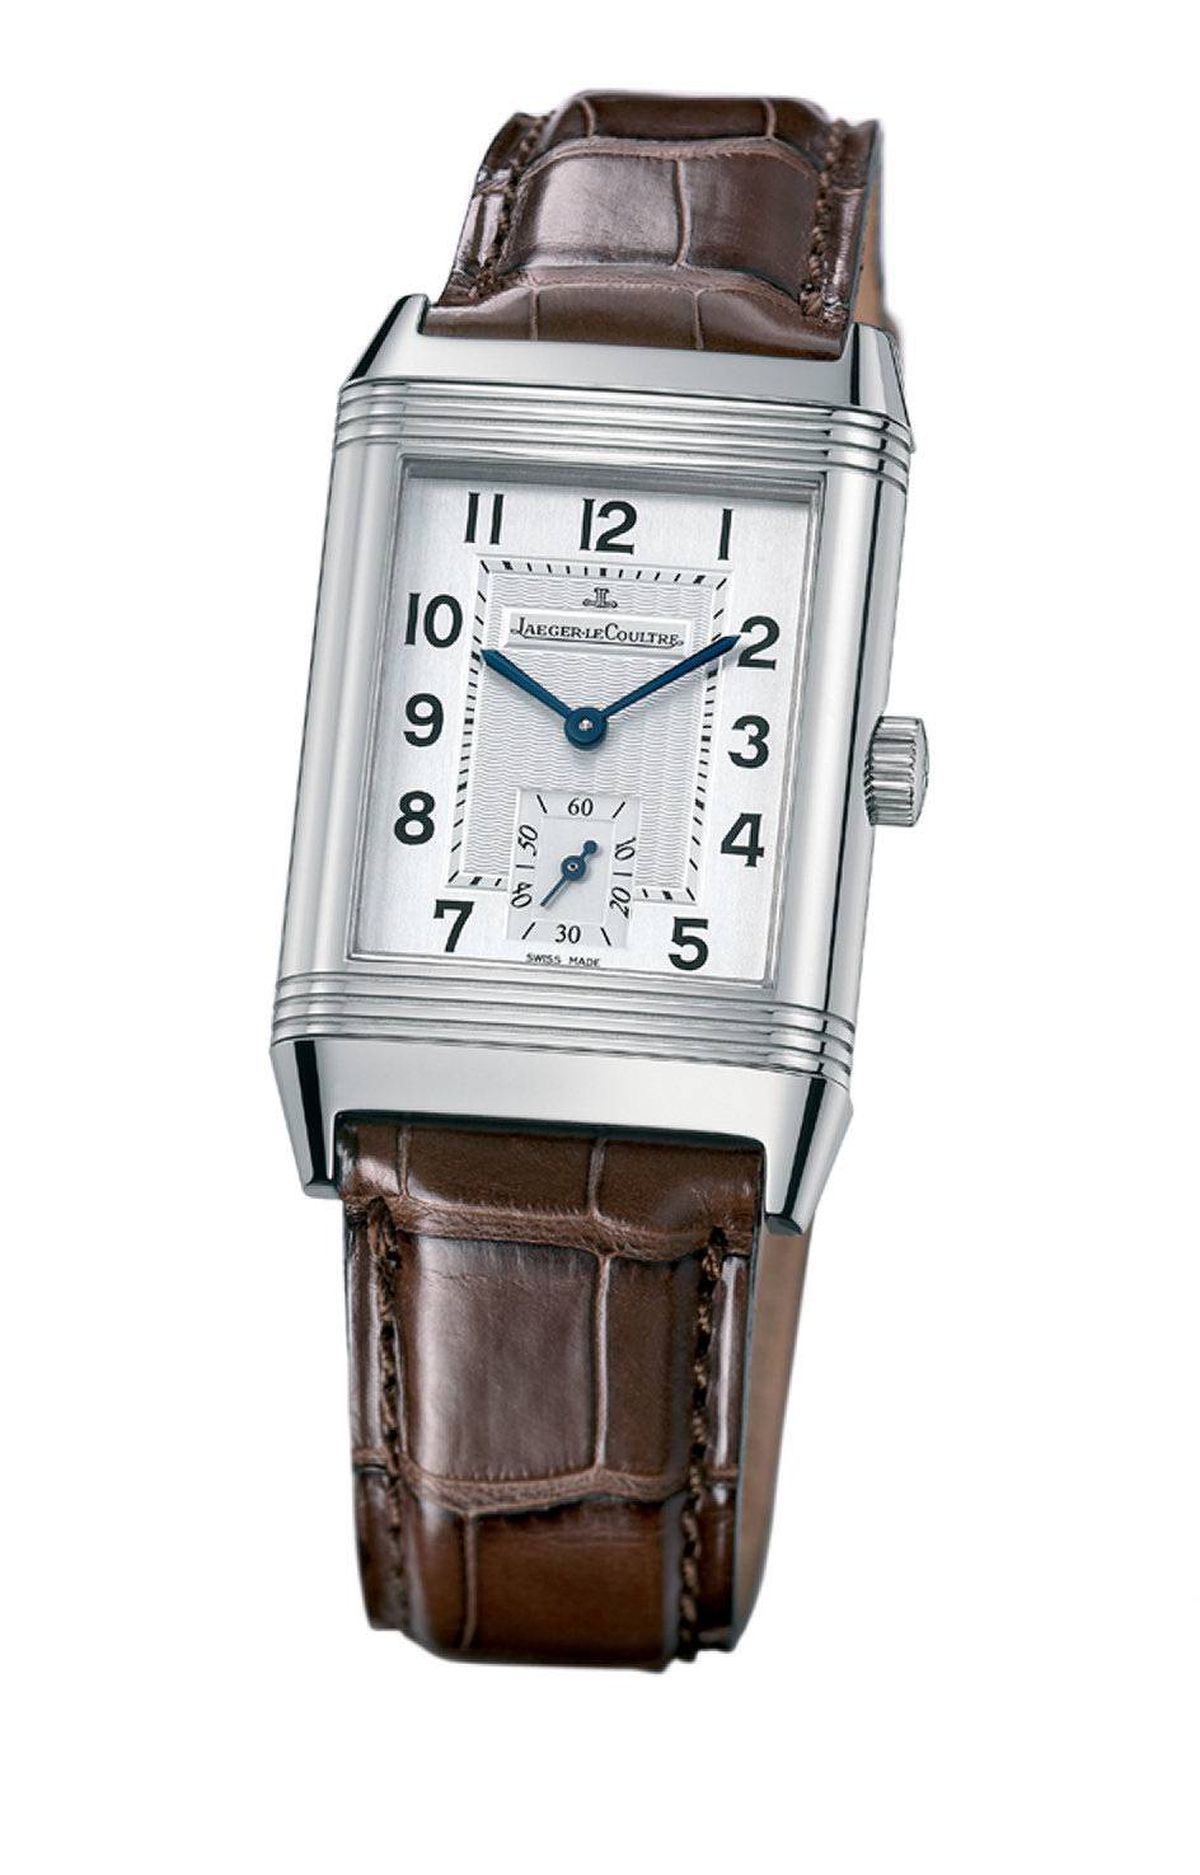 Reverso Grande Taille watch in stainless steel with alligator strap by Jaeger LeCoultre, $7,150 at Birks (www.birks.com)